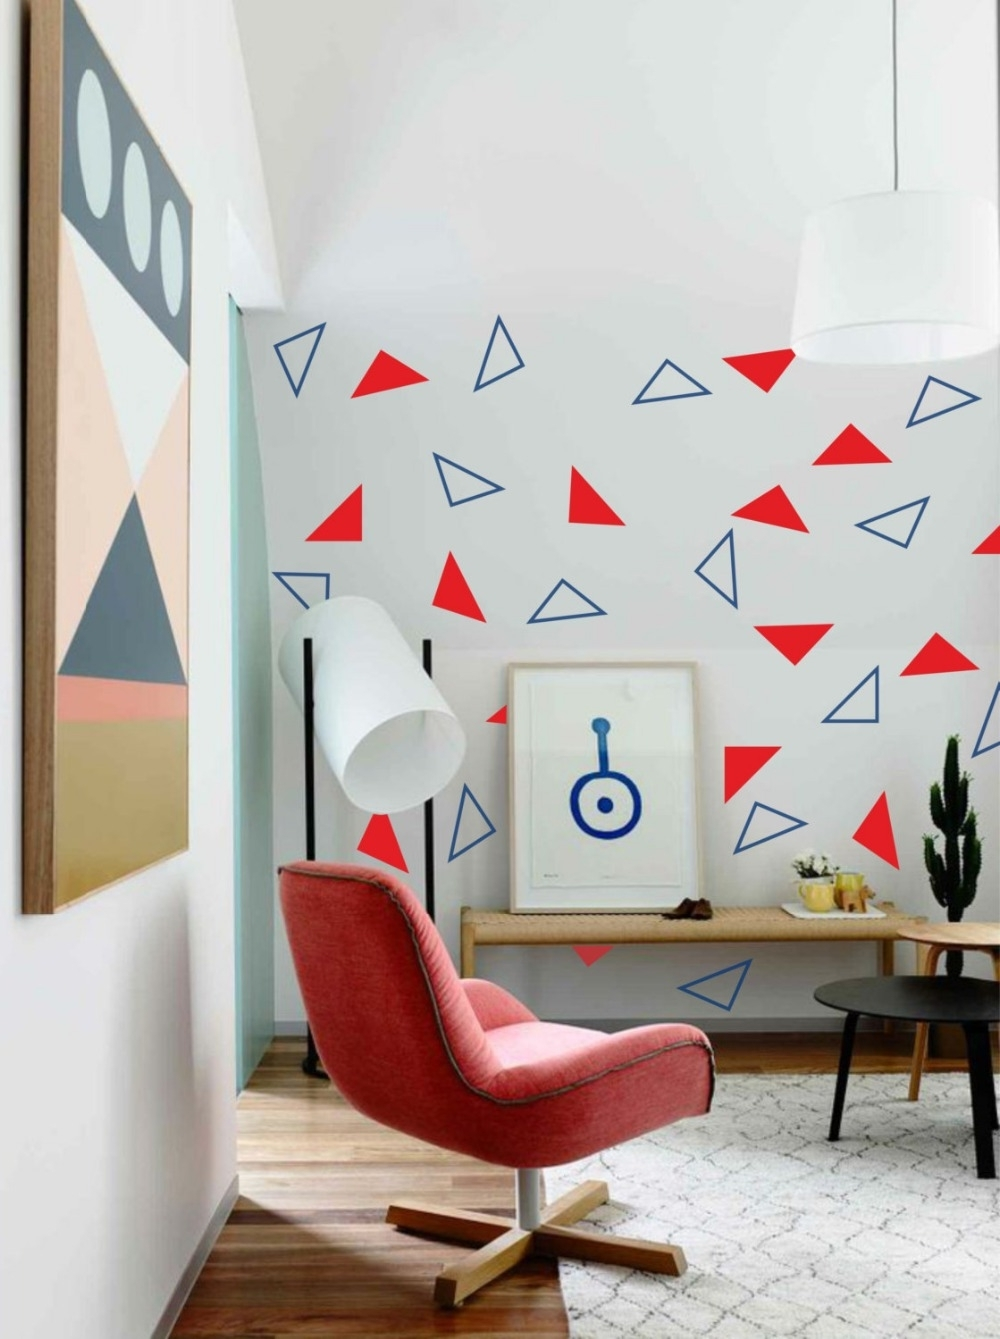 24Pcs(Solid And Hollow) Triangles Abstract Geometric Wall Sticker Pertaining To Most Up To Date Abstract Art Wall Decal (View 1 of 15)